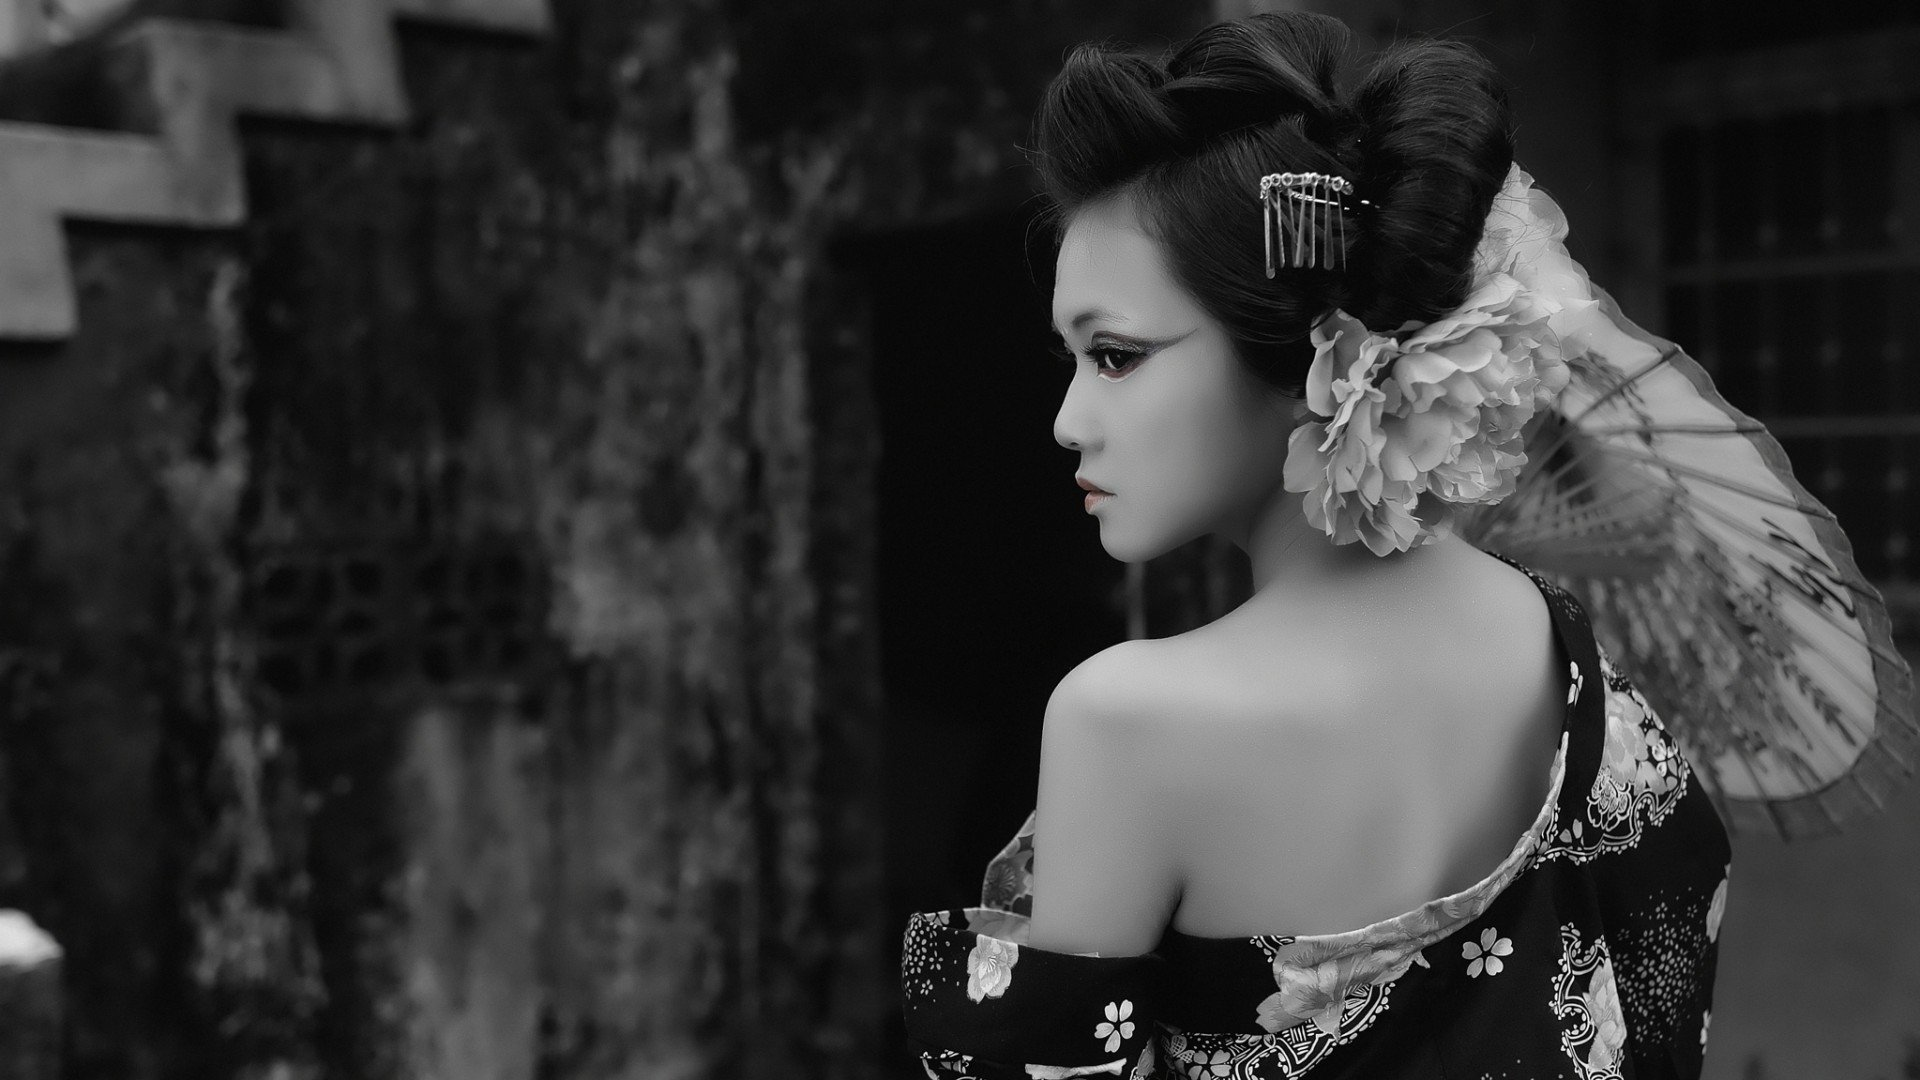 Geisha wallpaper 29534 1920x1080